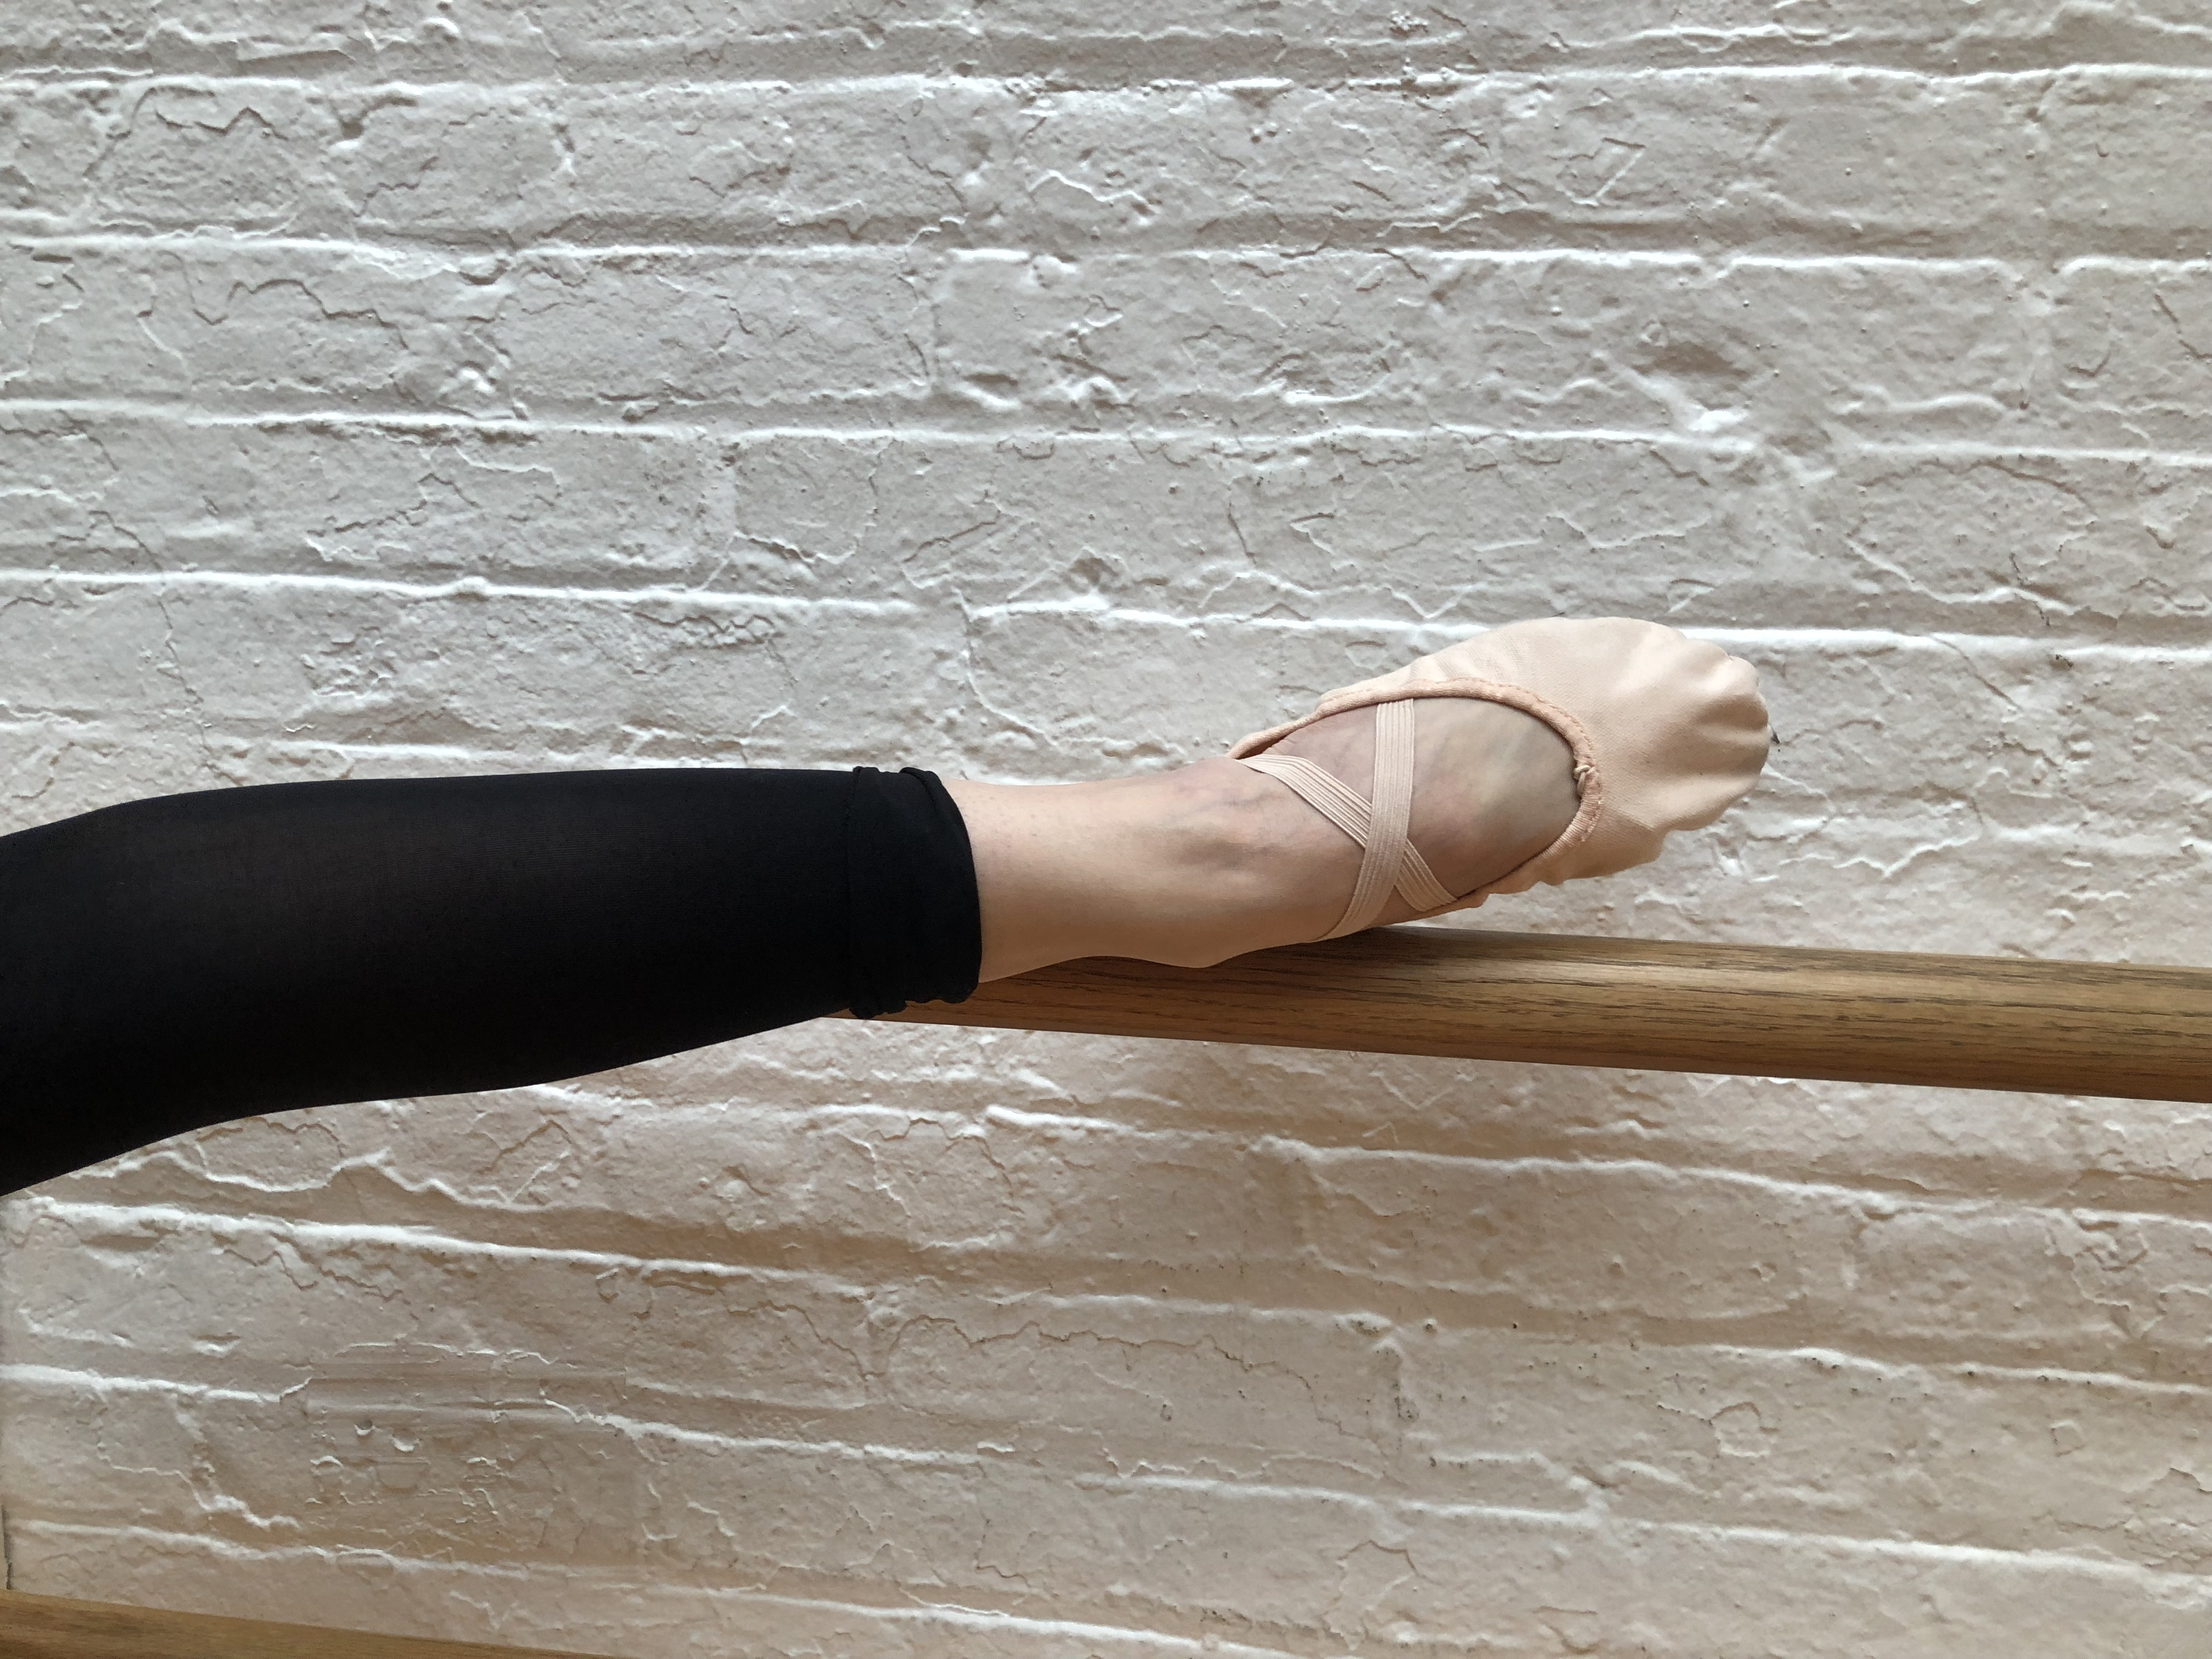 BBB Ballet Body (TM) Barre works the muscles of the foot